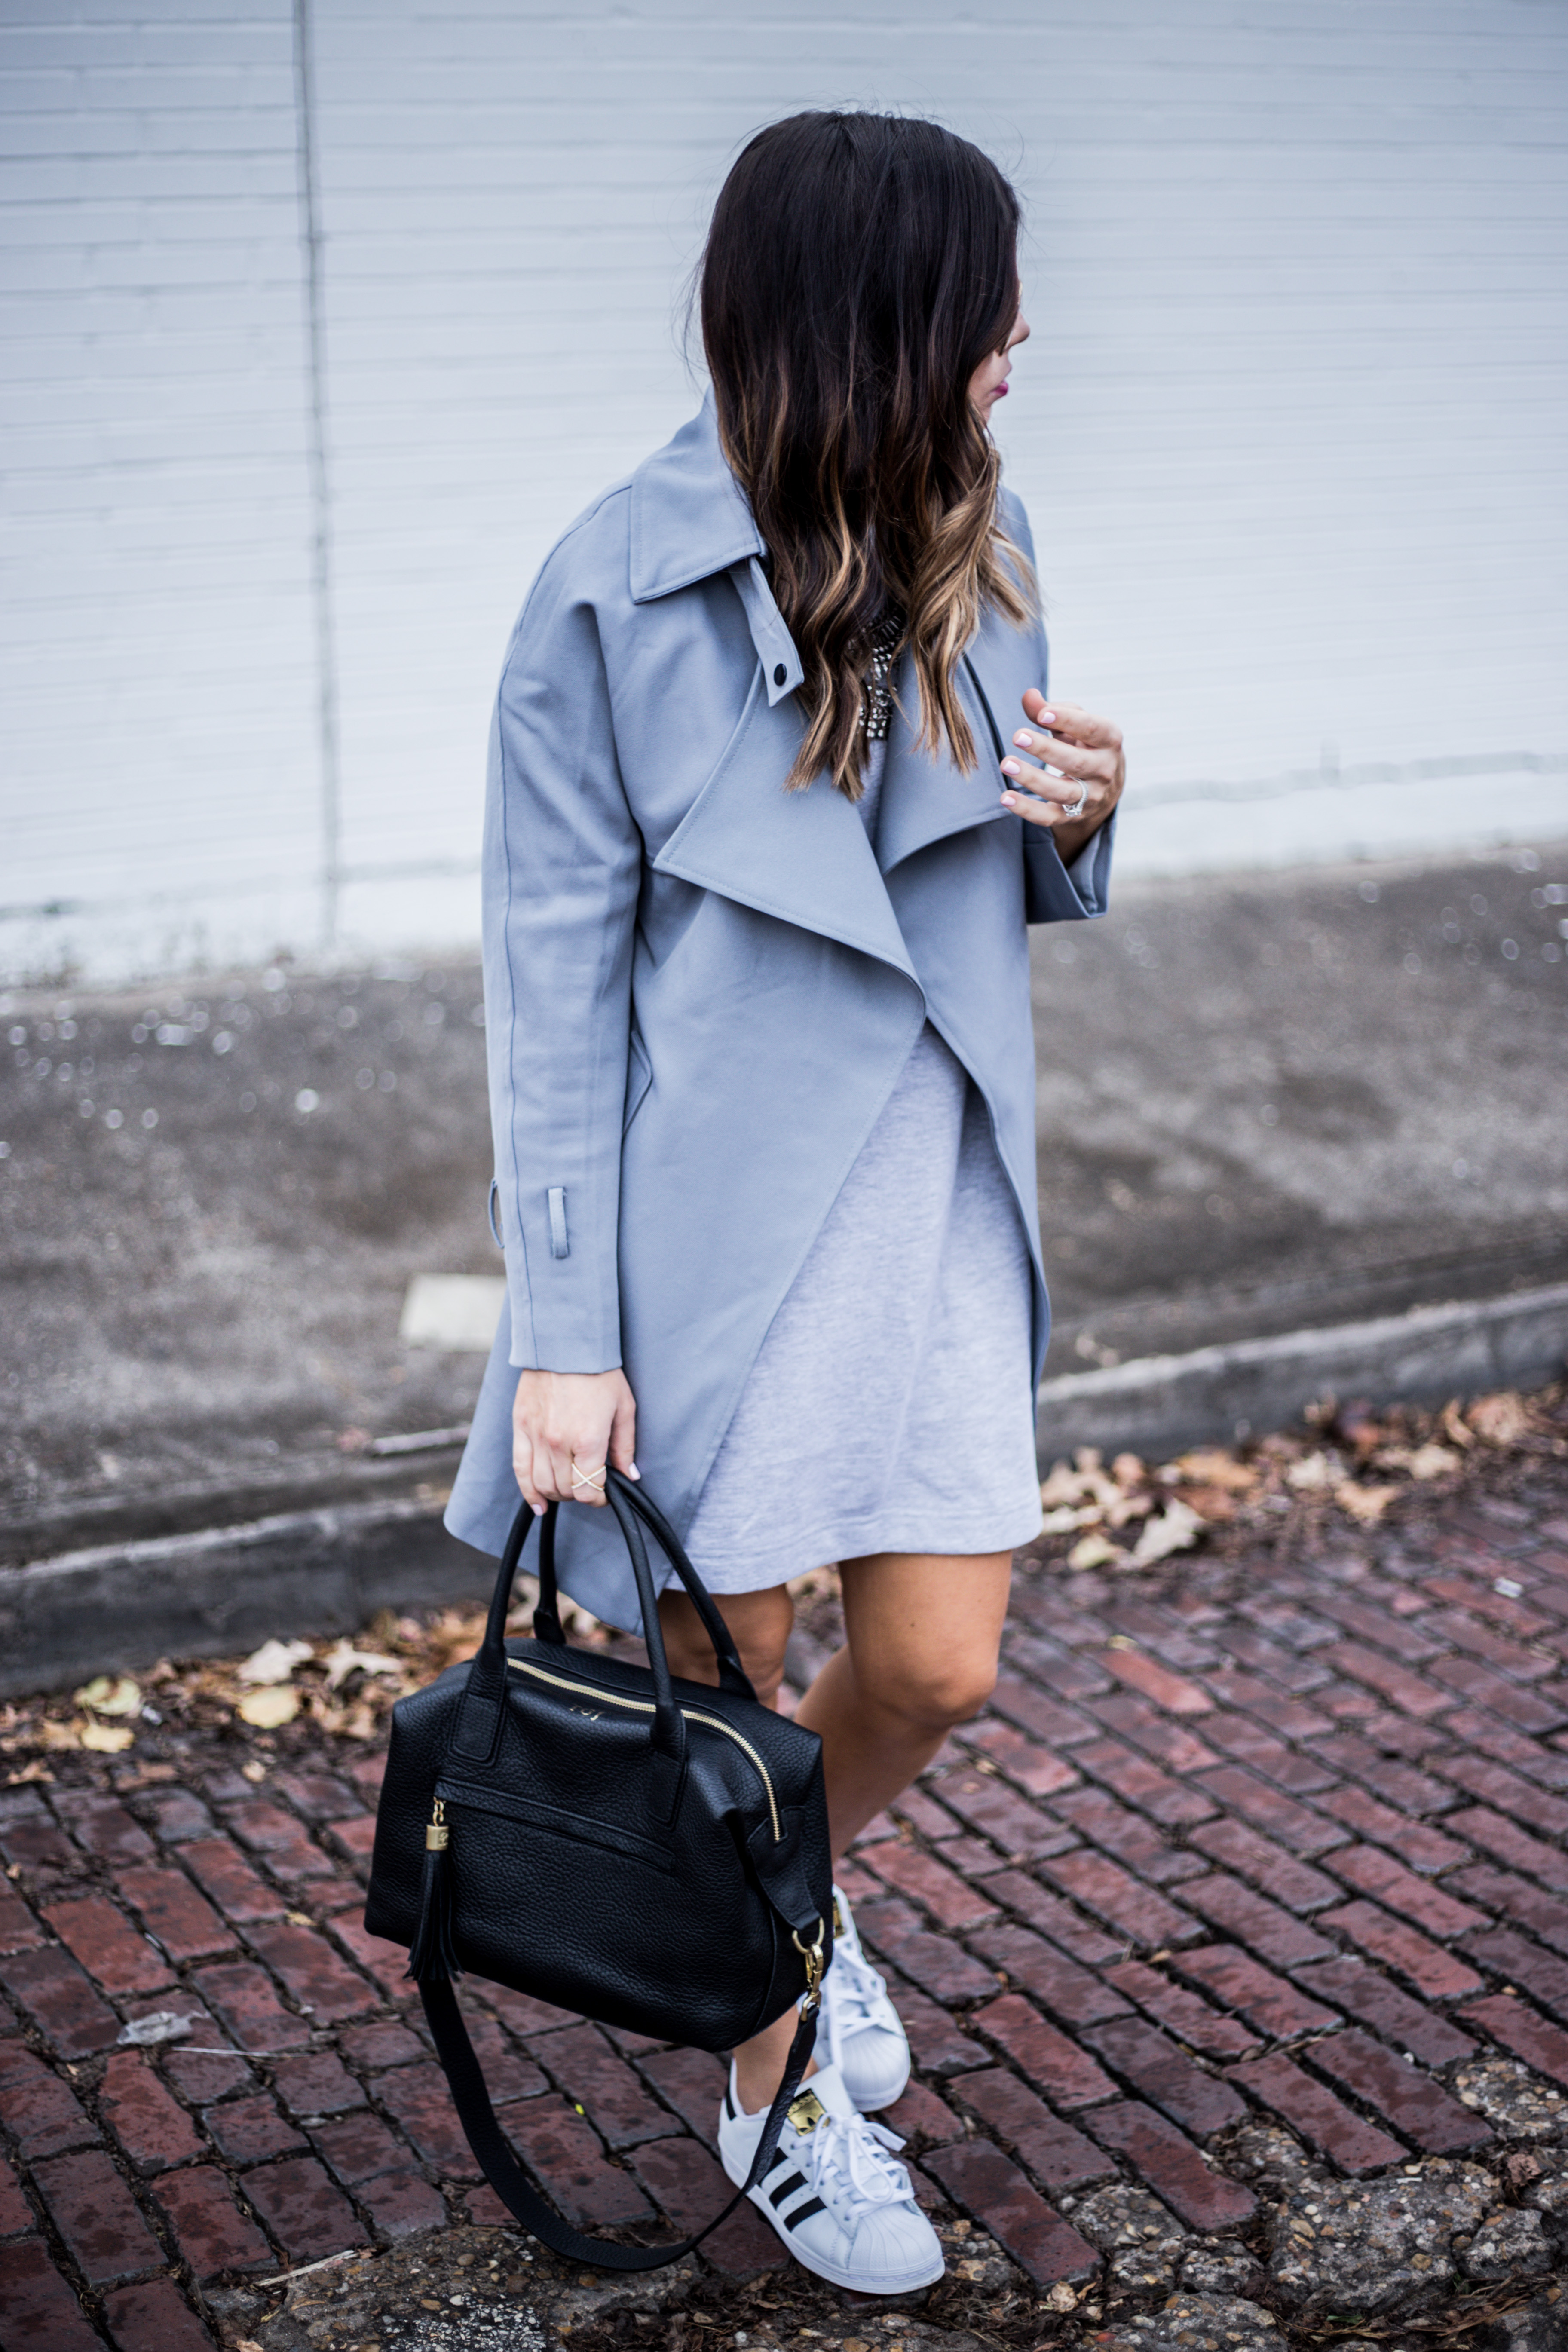 Loving this grey trench coat from chicwish with sneakers | what's trending in fashion 2016